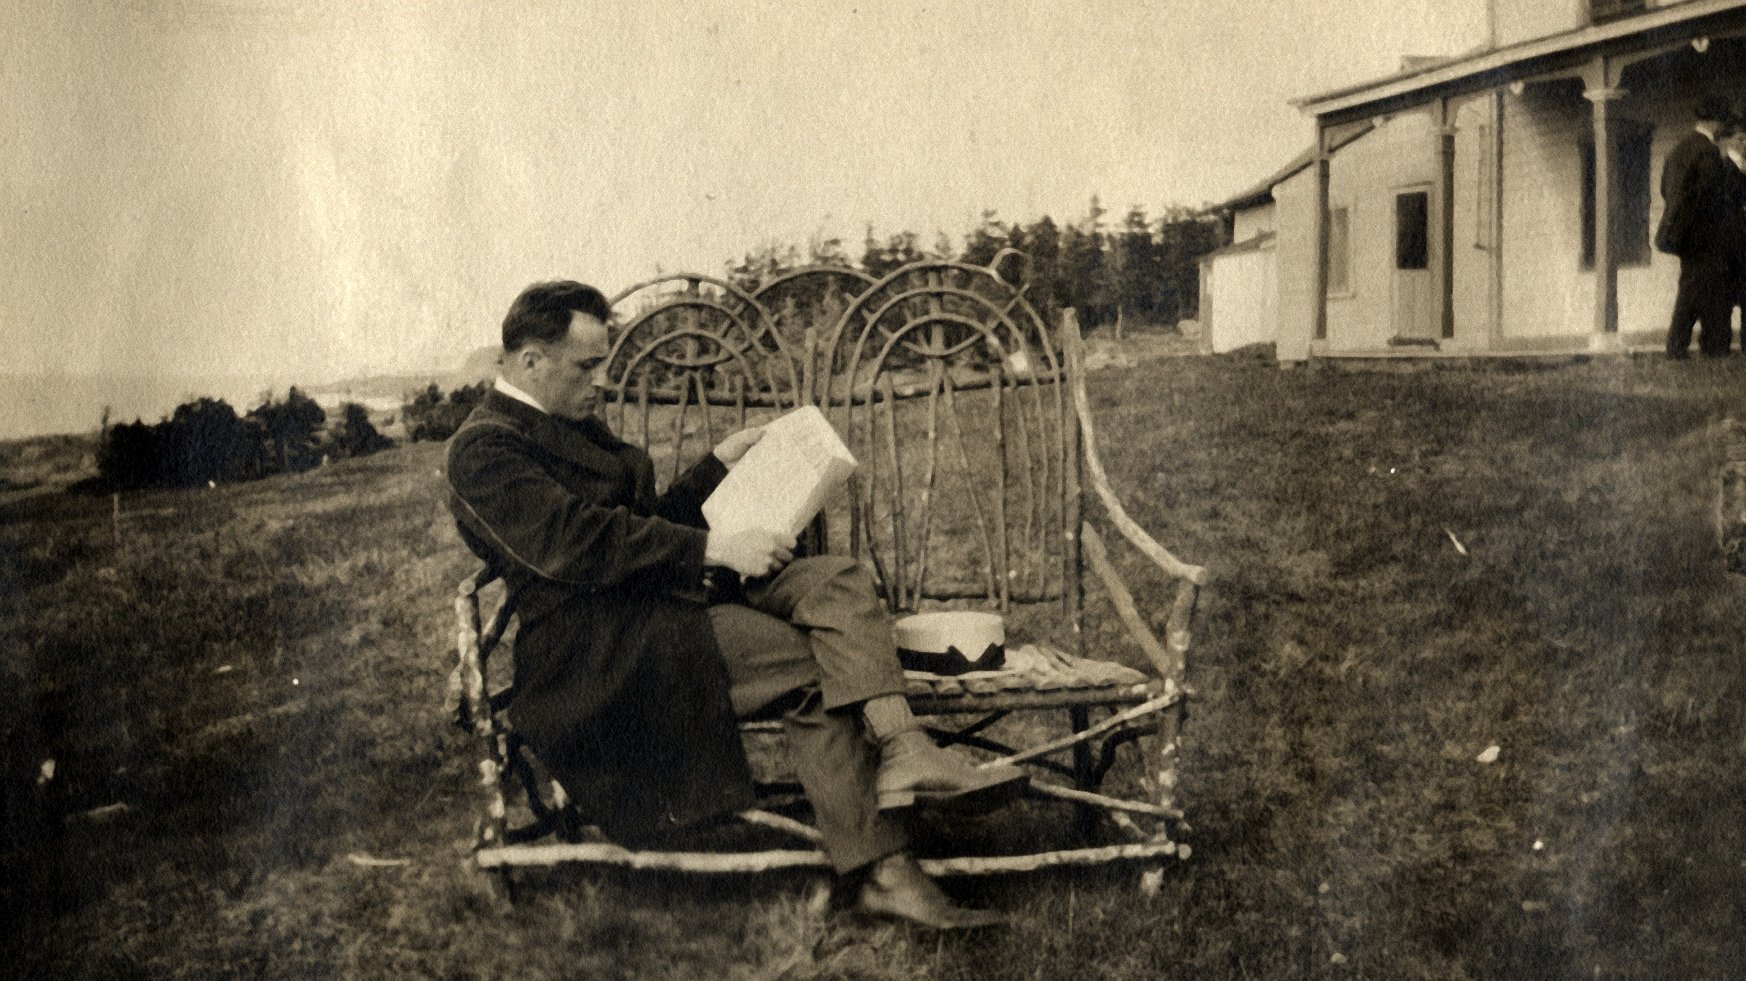 A man on vacation is reading, sitting on a wicker bench at the rear of a summer residence.